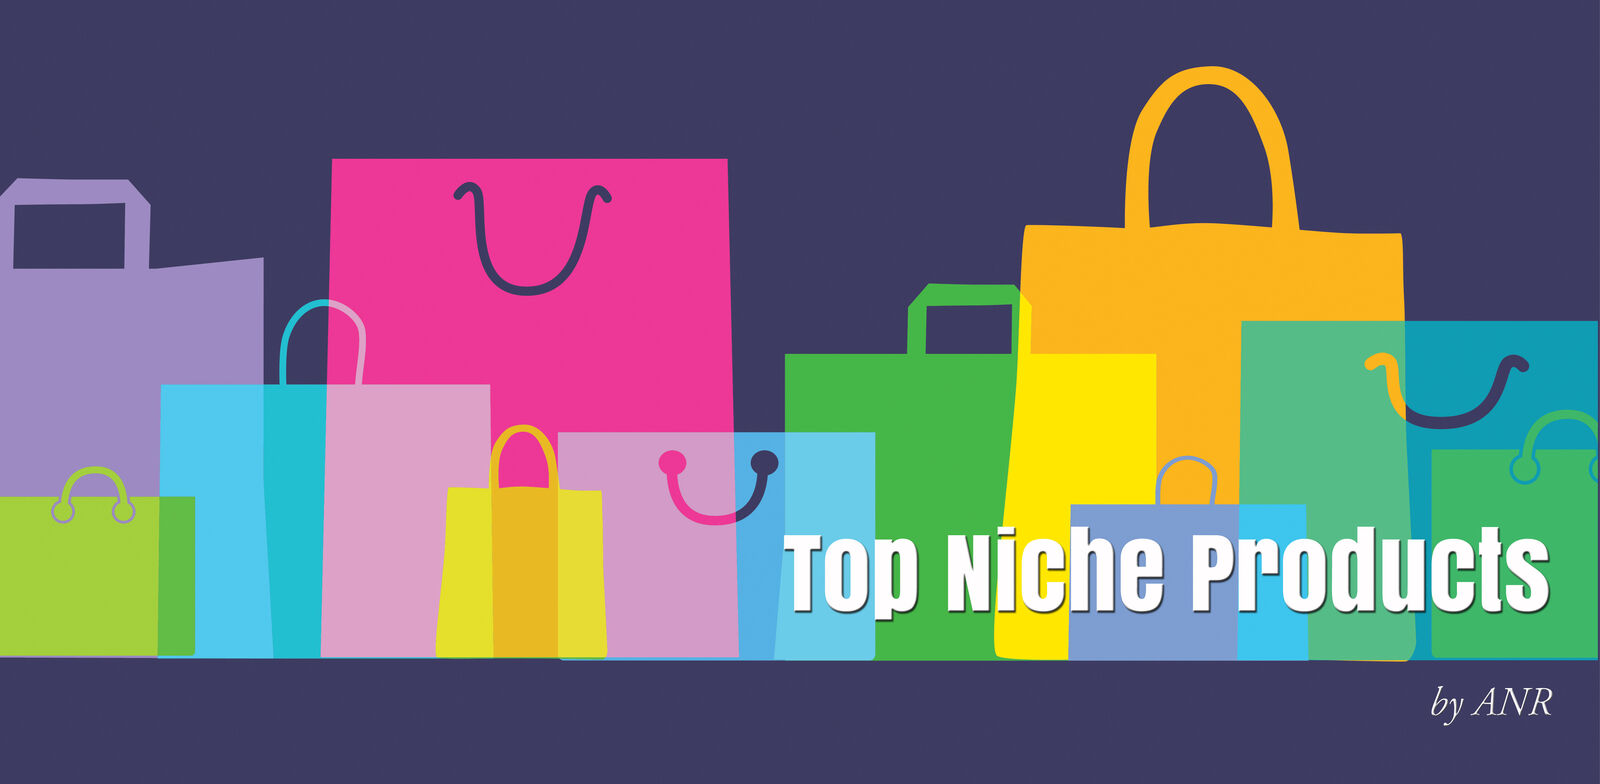 Top Niche Products by ANR